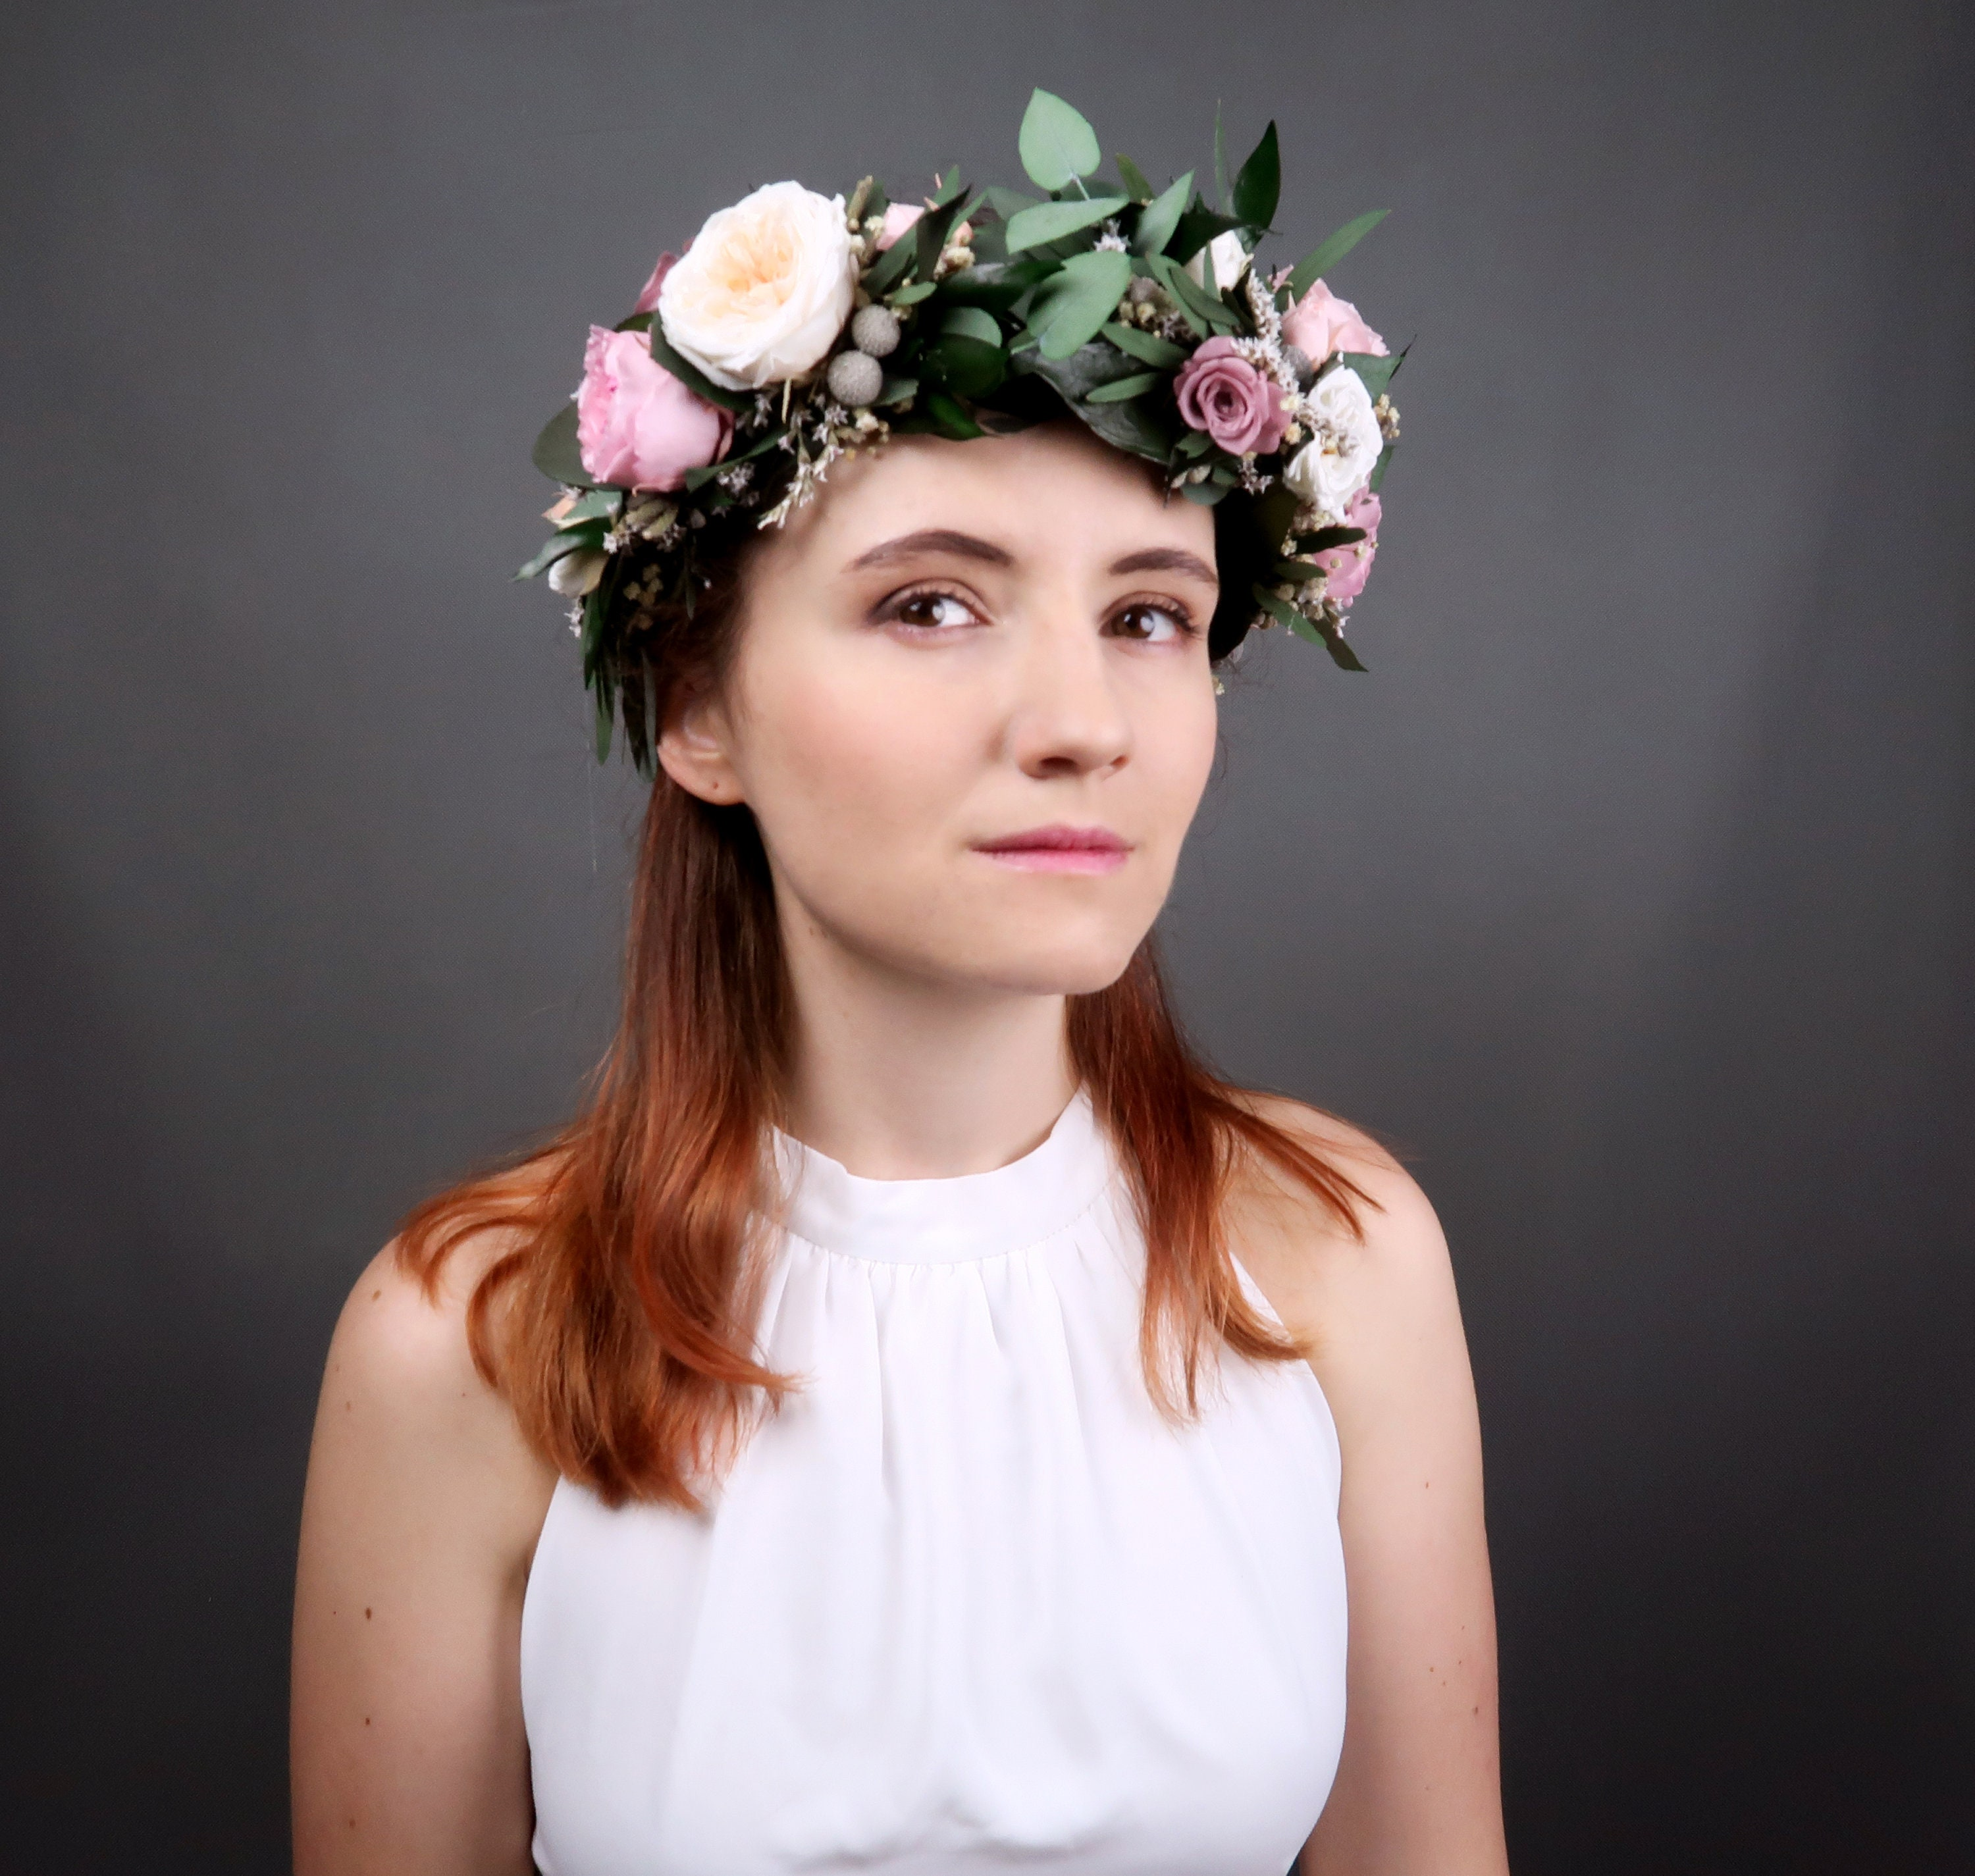 Bridal wedding floral crown with real preserved flowers and greenery bridal wedding floral crown with real preserved flowers and greenery with dusty pink and peach english peony roses izmirmasajfo